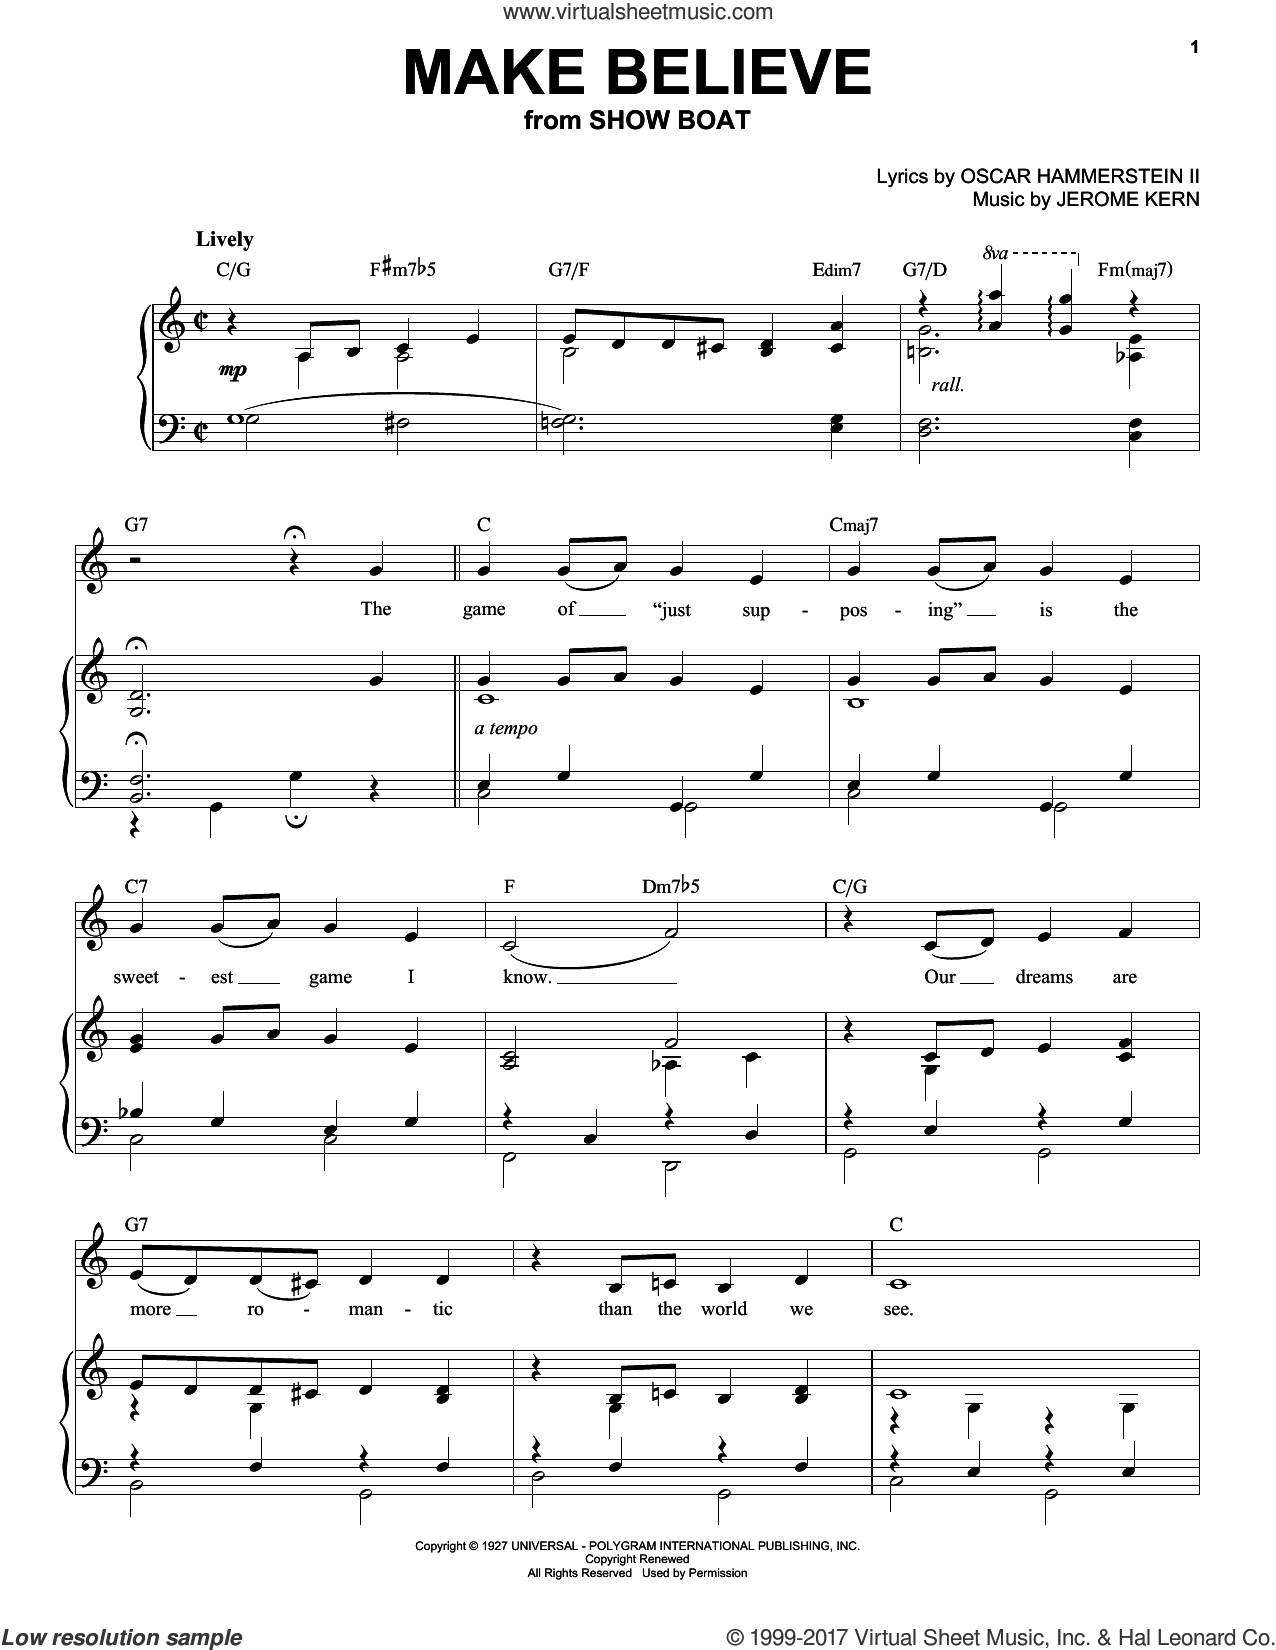 Make Believe sheet music for voice and piano (High Voice) by Oscar II Hammerstein and Jerome Kern, intermediate skill level